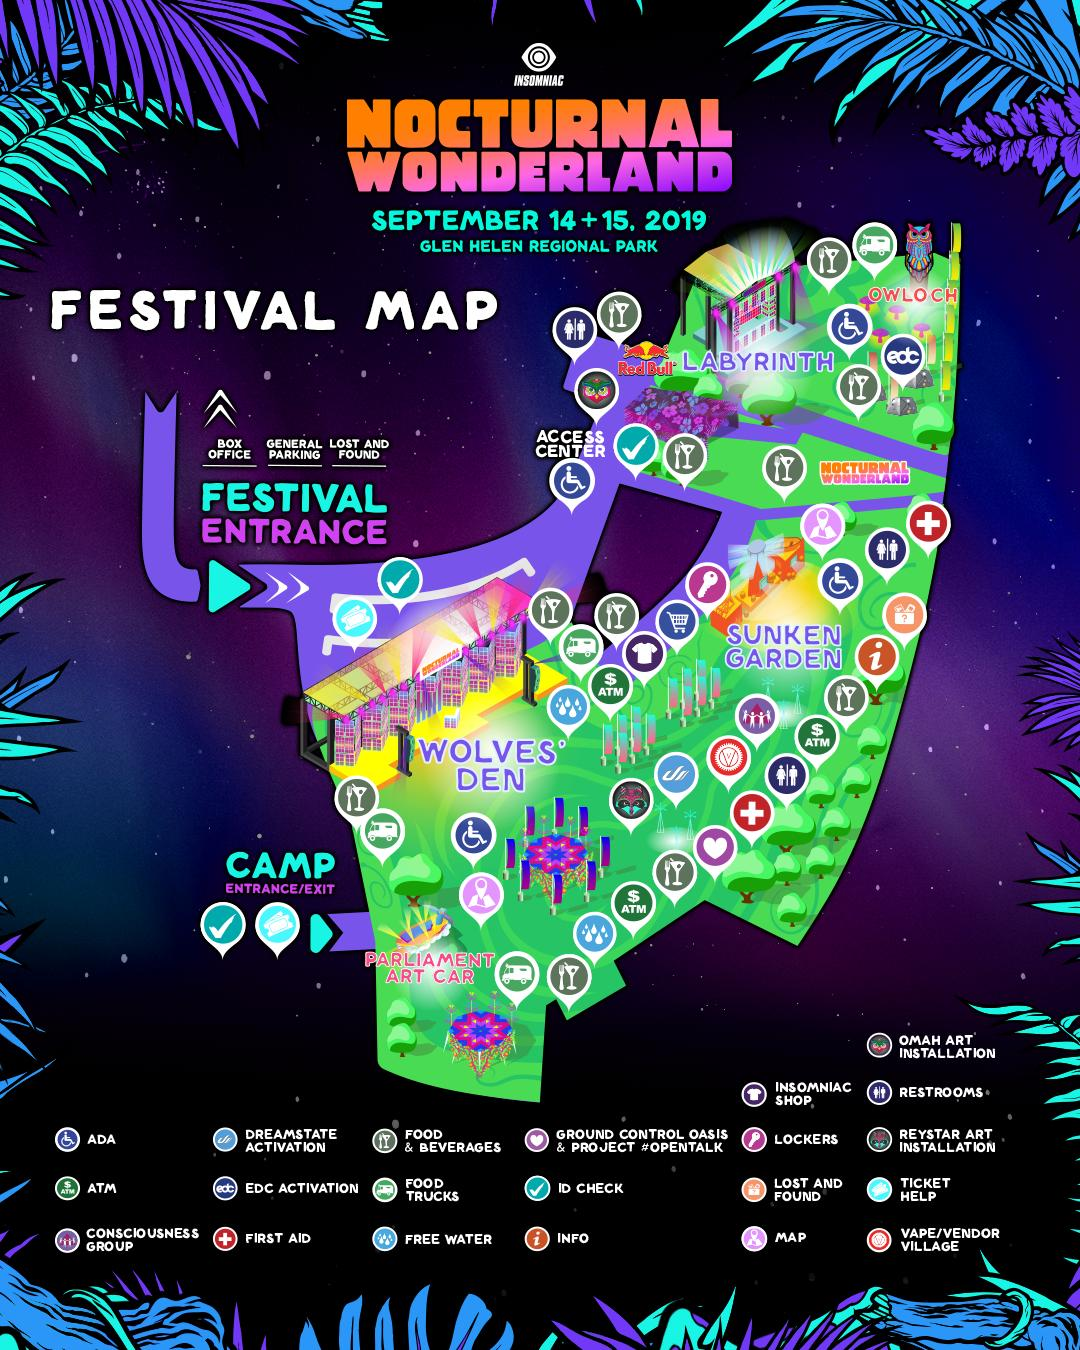 Nocturnal Wonderland map 2019